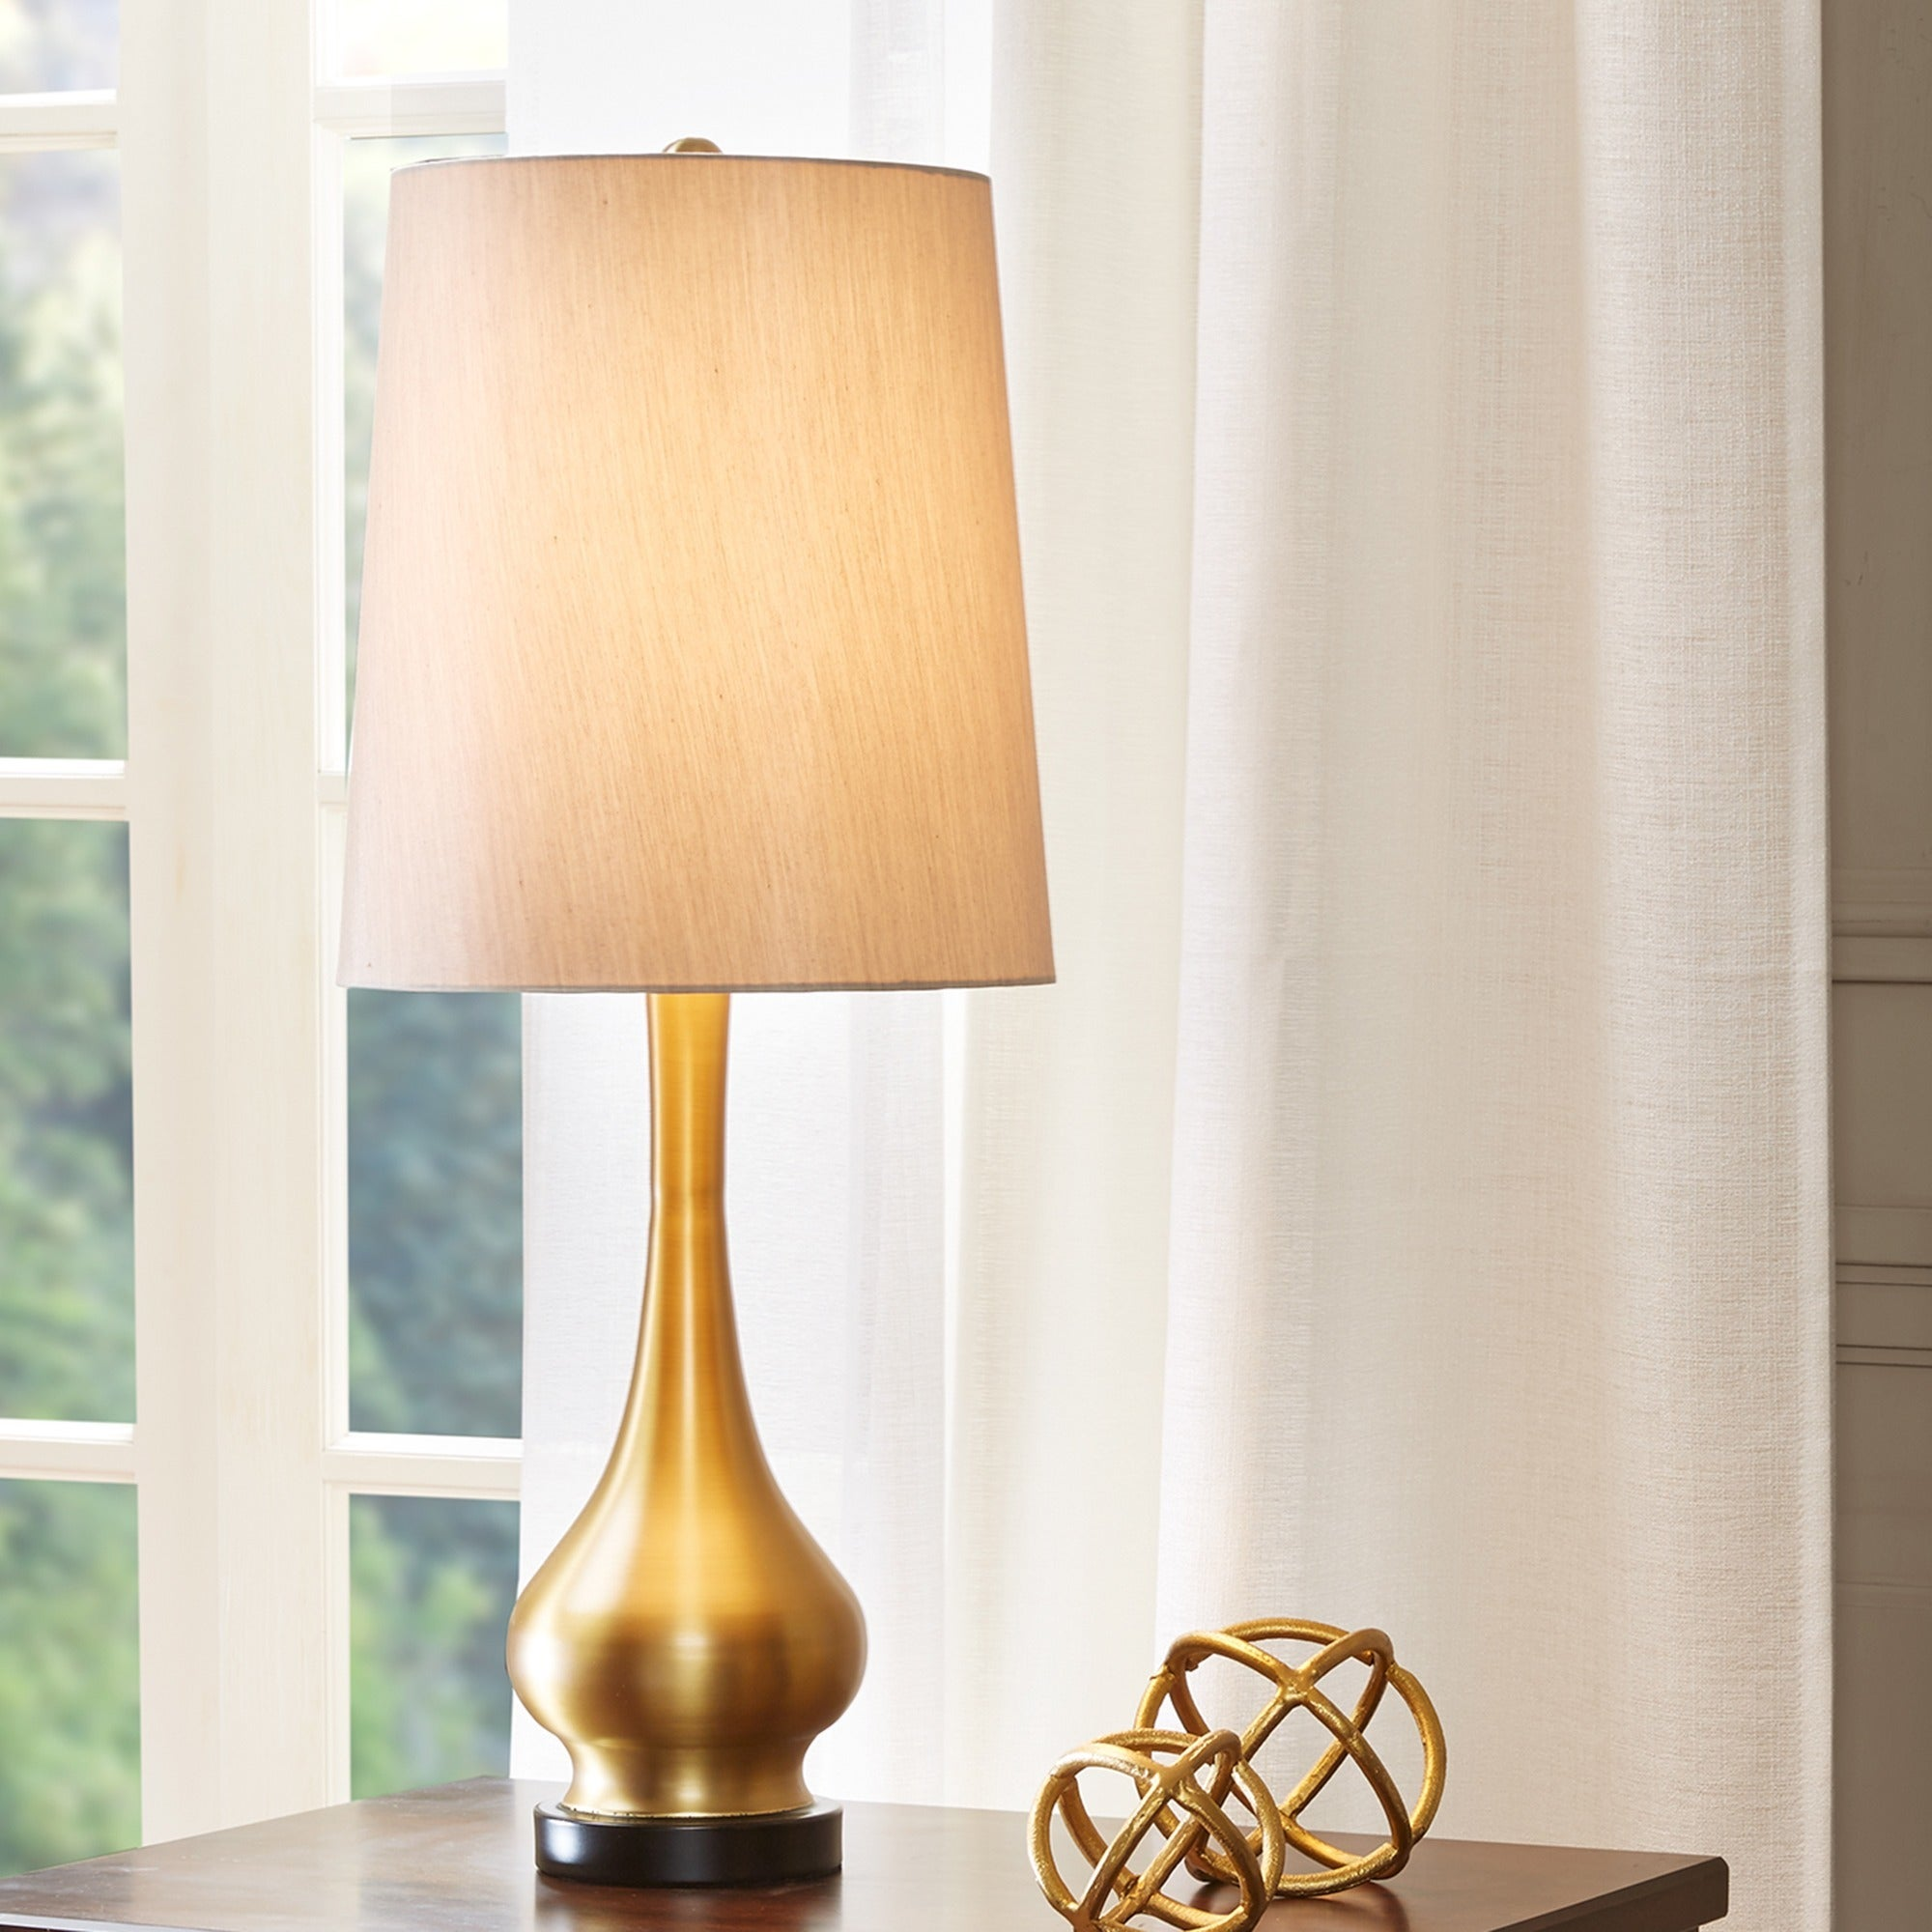 Shop Madison Park Signature Lia Gold Table L& - Free Shipping Today - Overstock.com - 12237758 & Shop Madison Park Signature Lia Gold Table Lamp - Free Shipping ...